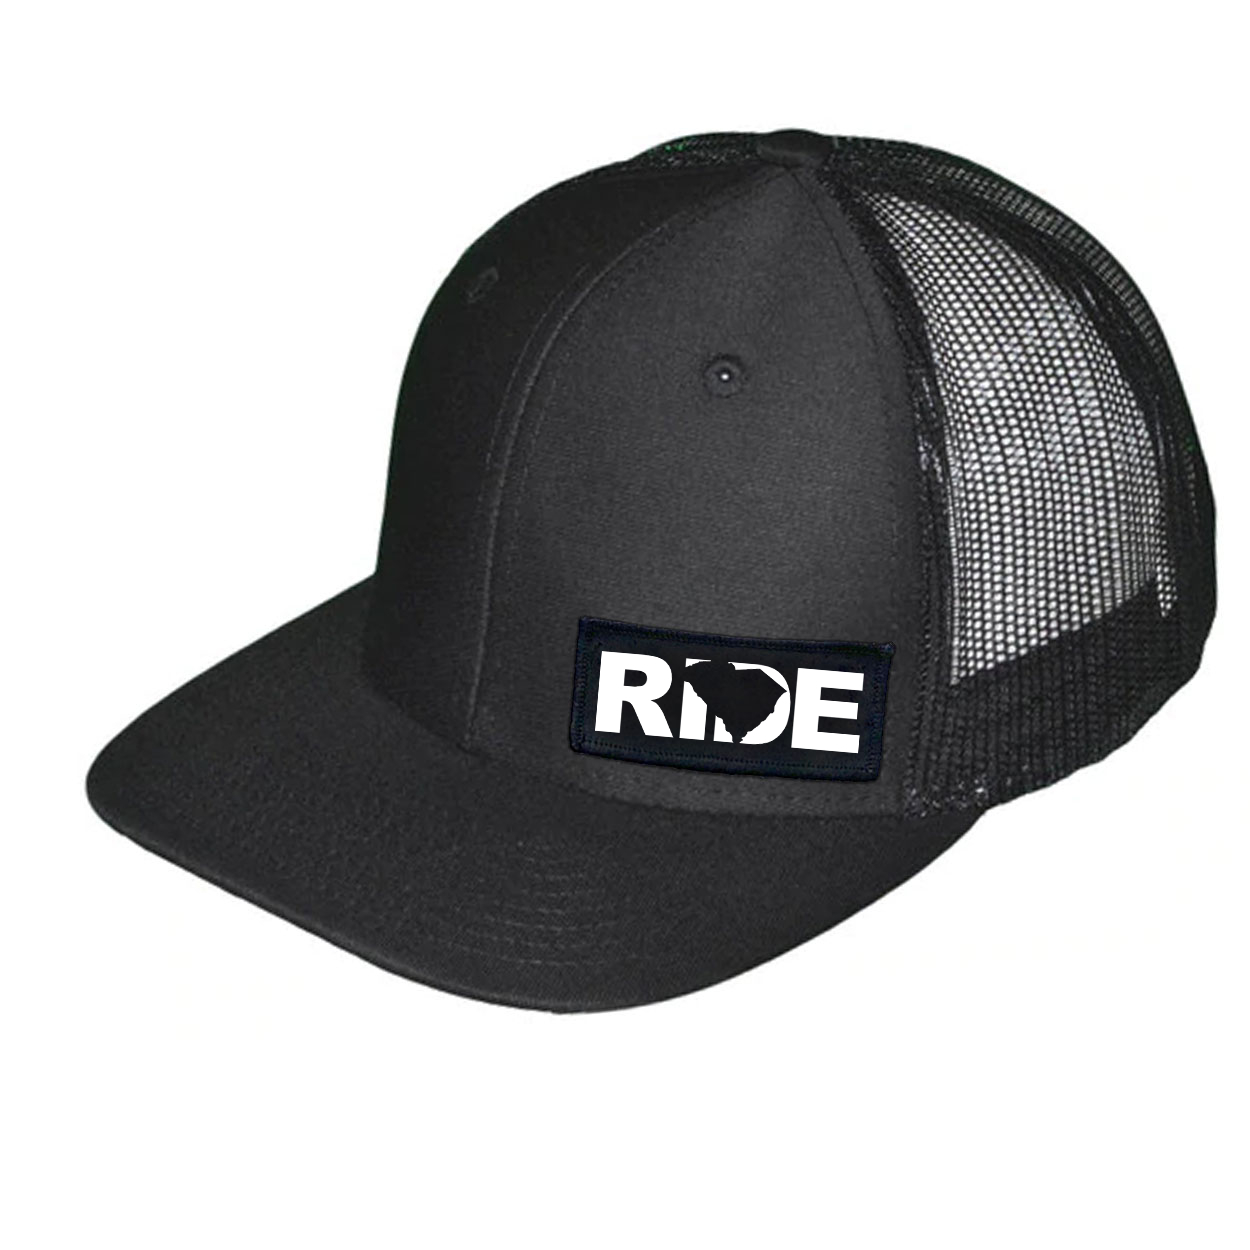 Ride South Carolina Night Out Woven Patch Snapback Trucker Hat Black (White Logo)